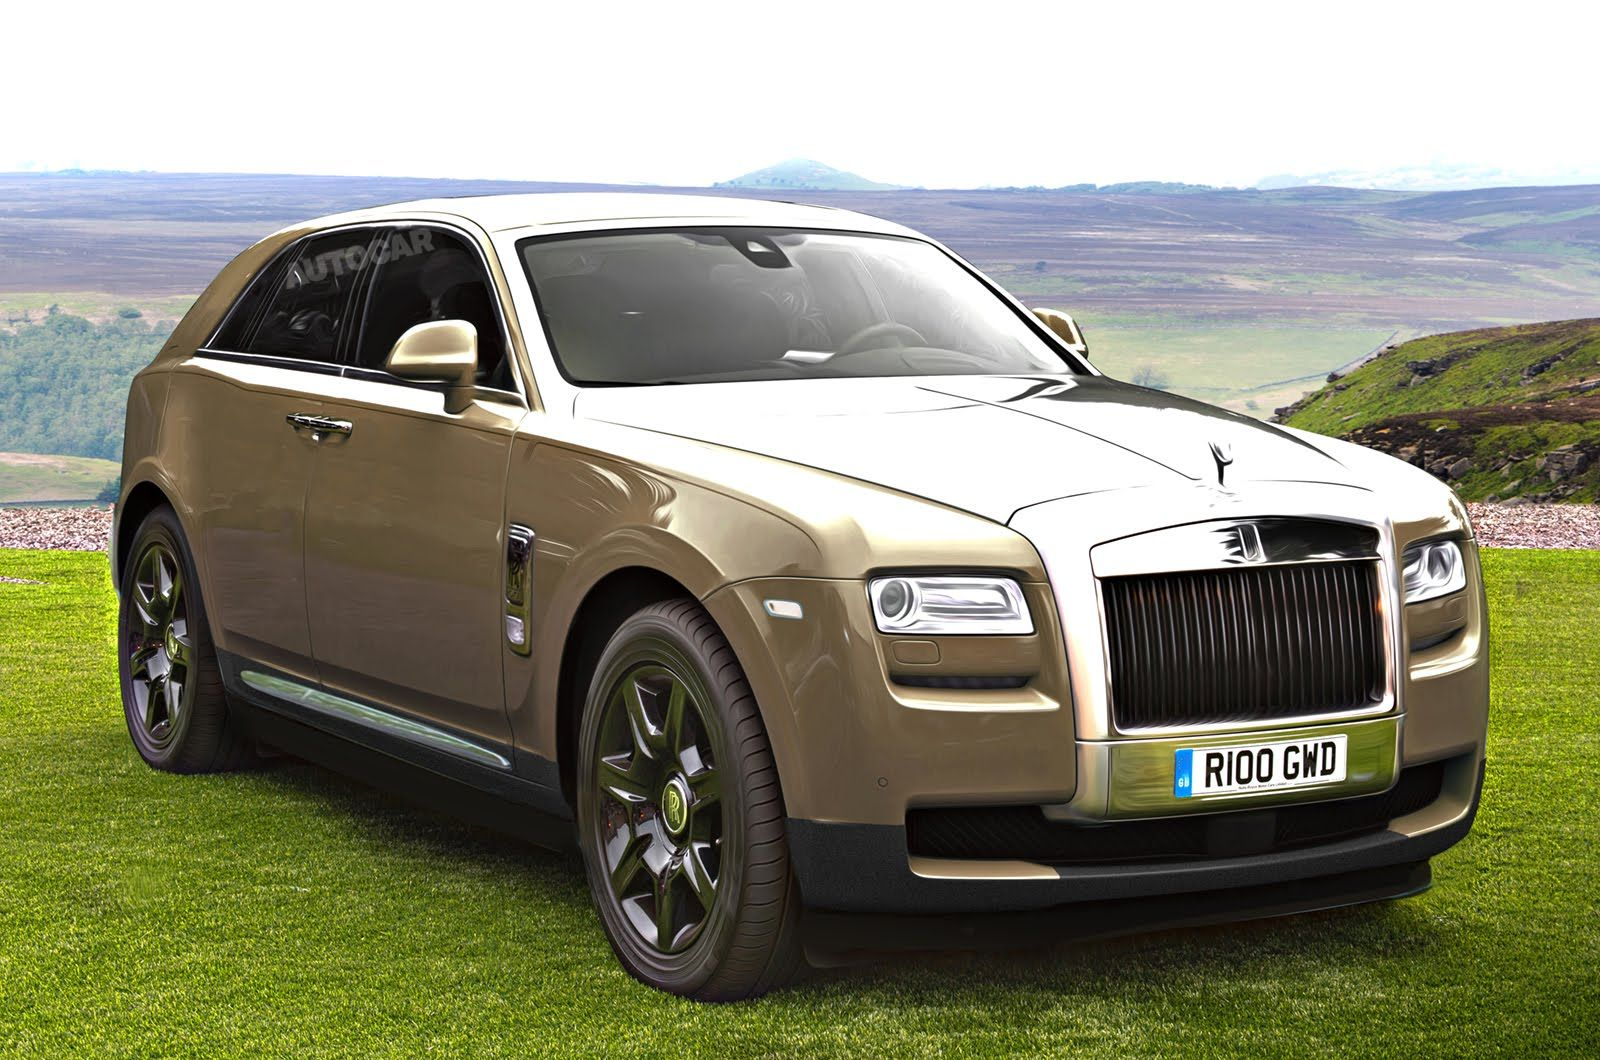 2018 rolls royce suv rendered 2016 new best cars - Rolls Royce Suv Oh No Rolls Royce Response To The Bentley Bentayga And Just For Good Measure They Have Decided To Paint Theirs In Metallic Gold Too